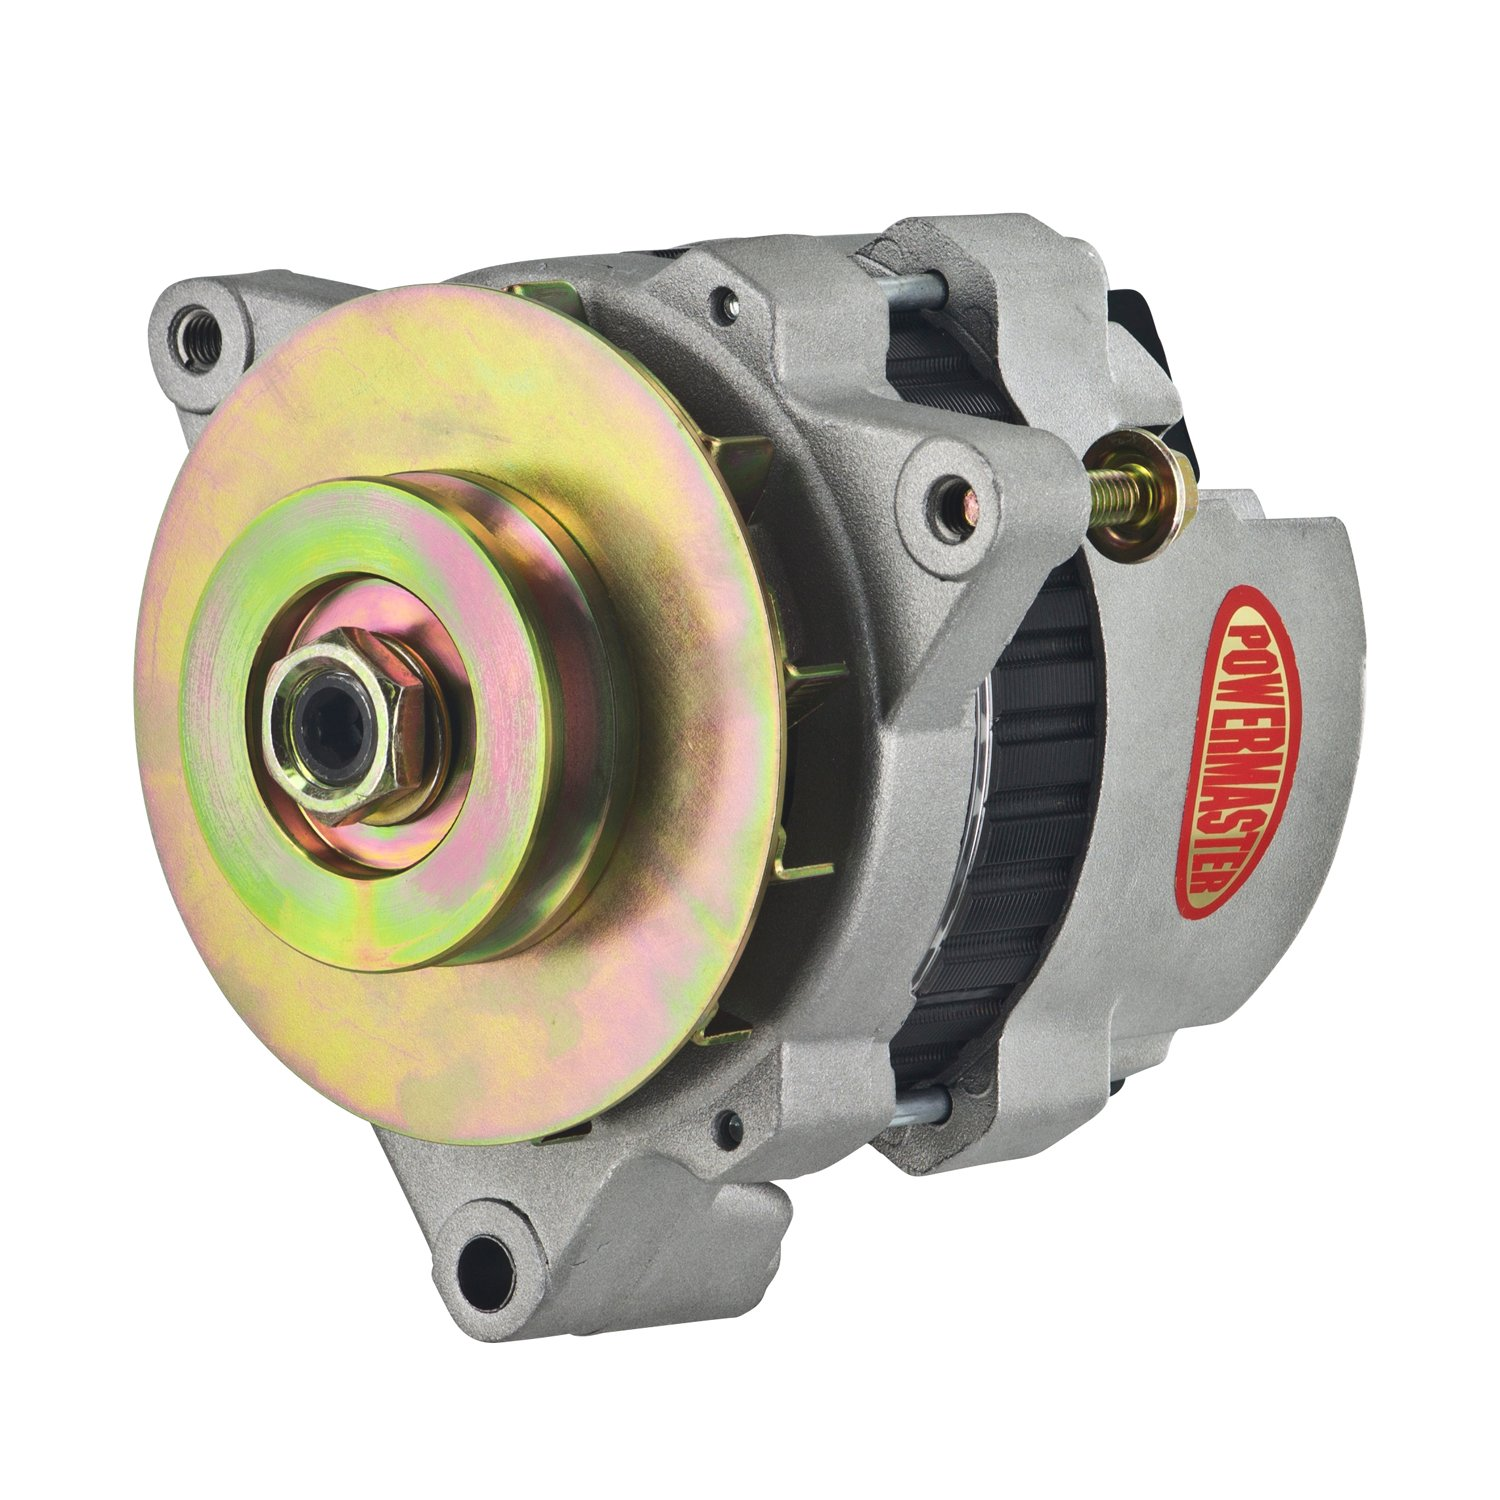 Powermaster 7478 - Powermaster GM CS121 Style 5x5 Compact Race Alternators